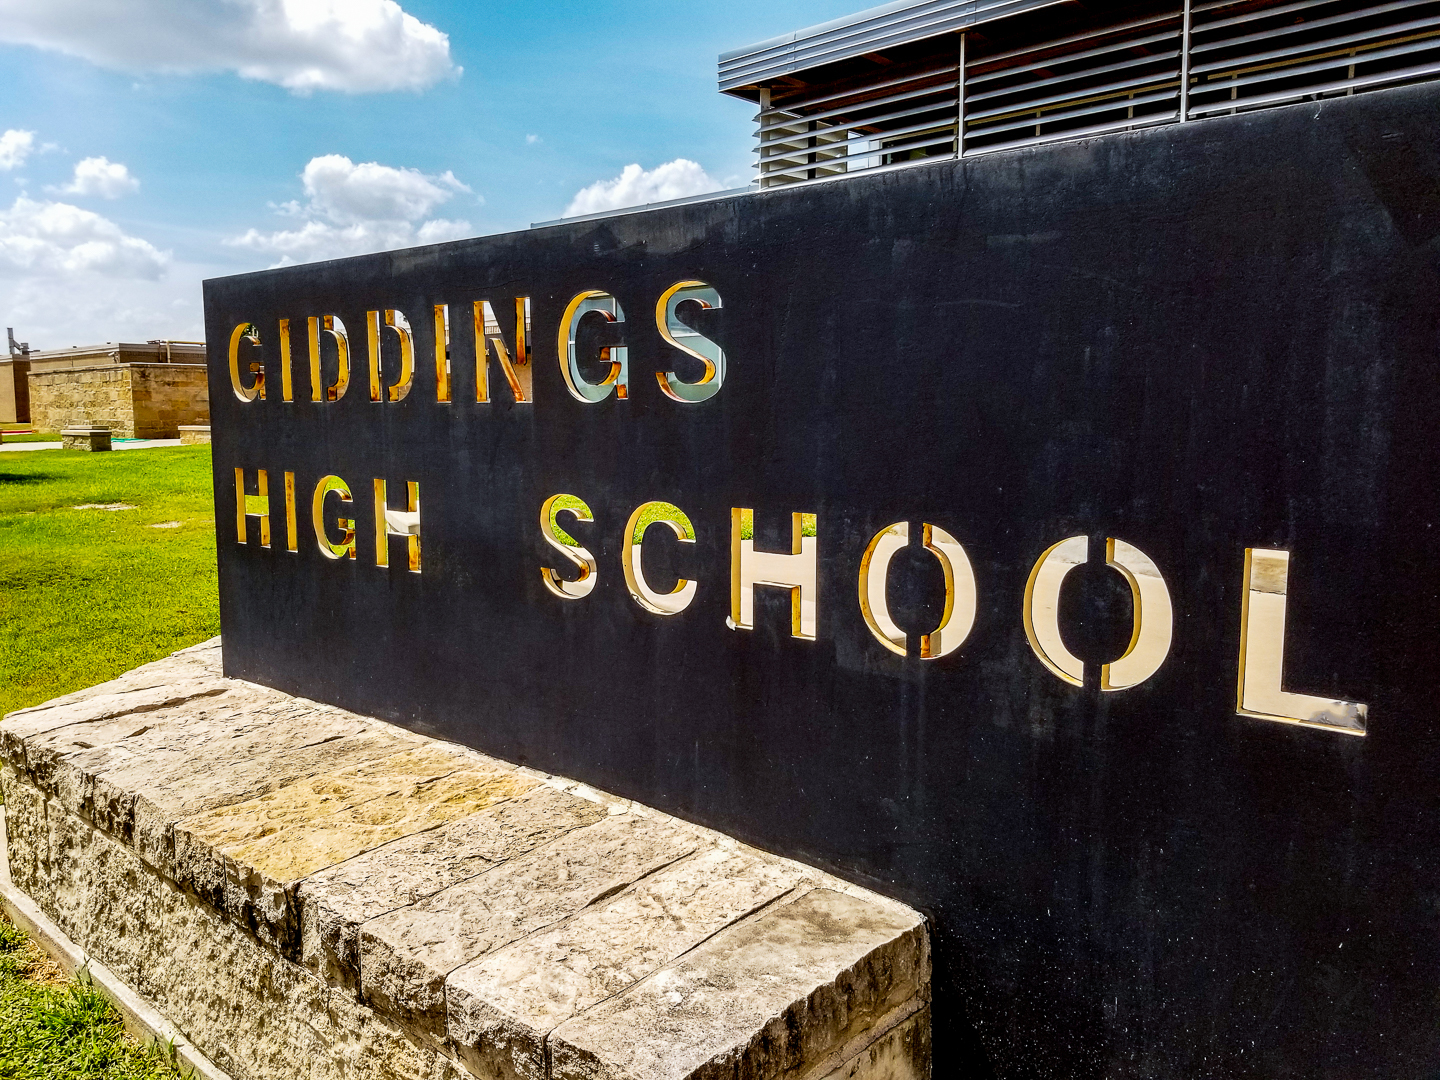 Giddings High School